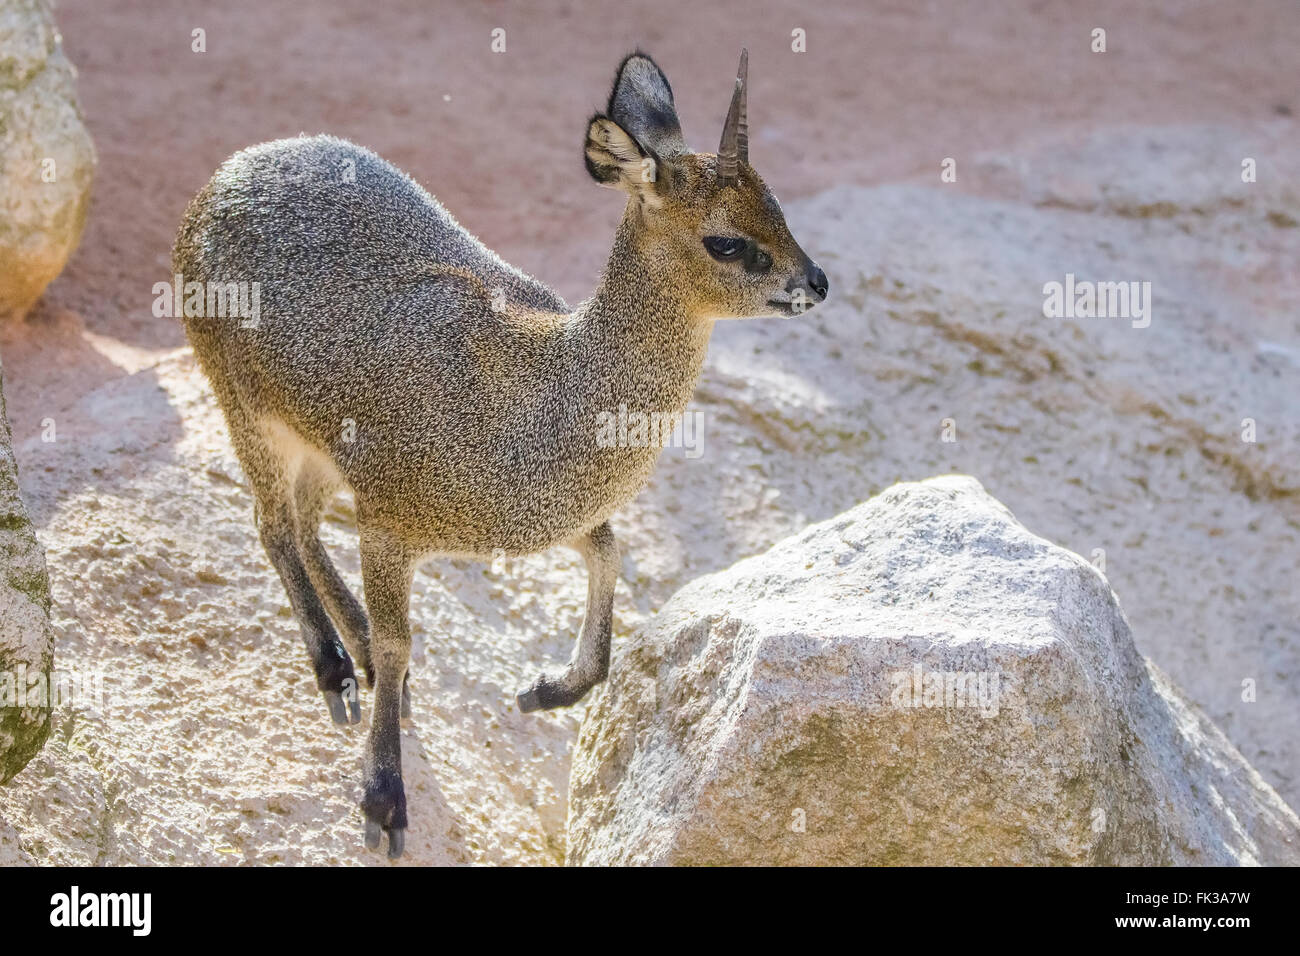 Dik-dik (Madoqua kirkii) is a smallest antelope - Stock Image